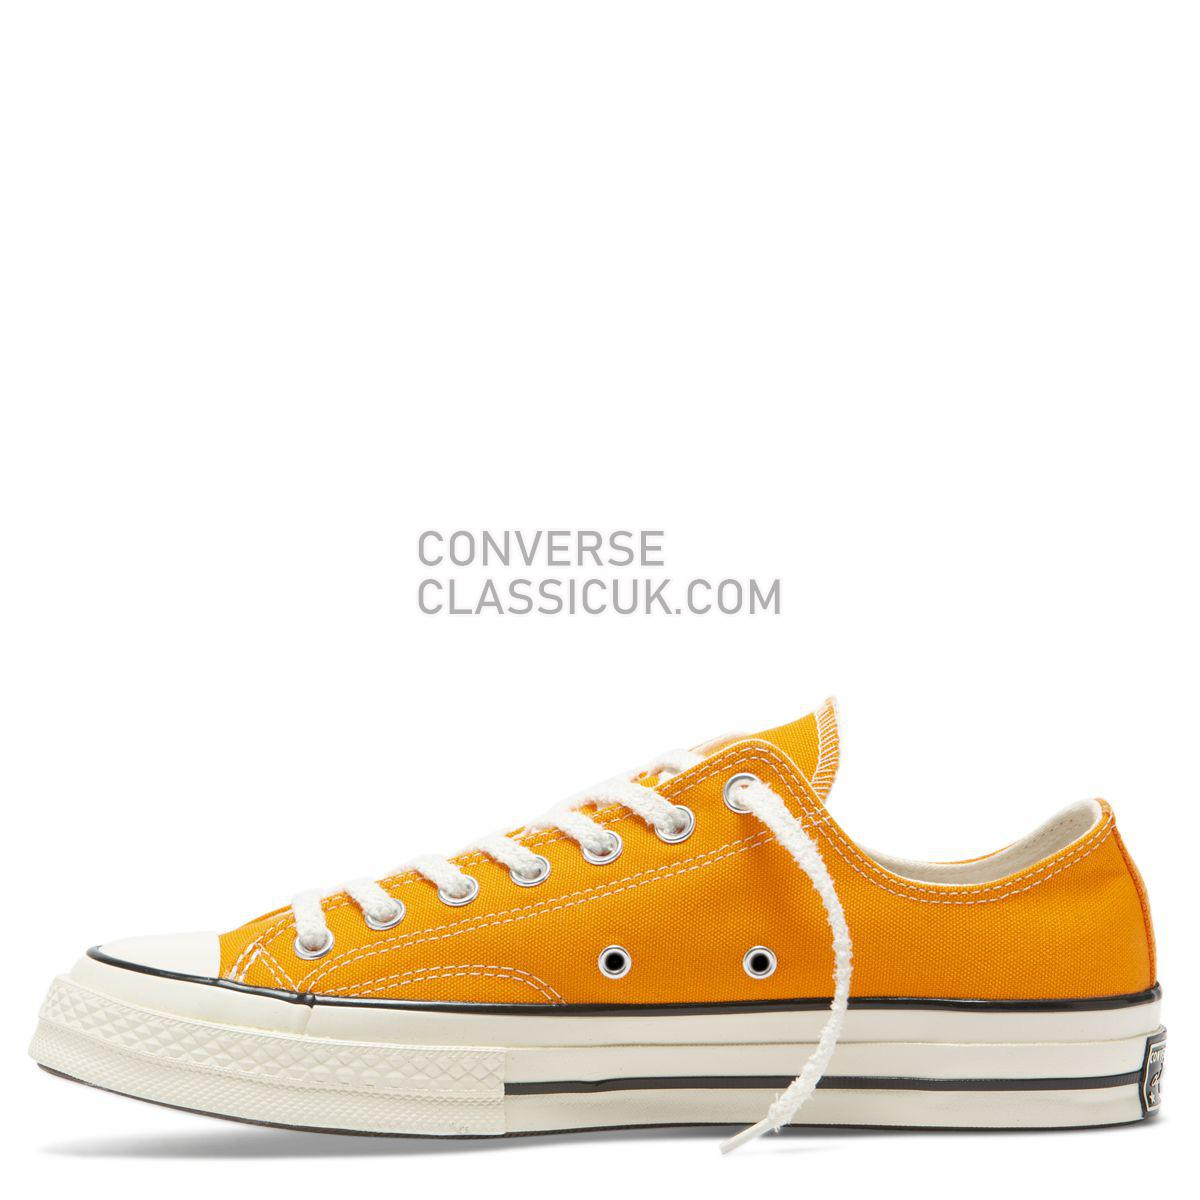 Converse Chuck Taylor All Star 70 Vintage Canvas Low Top Orange Rind Mens Womens Unisex 164928 Orange Rind/Egret/Black Shoes